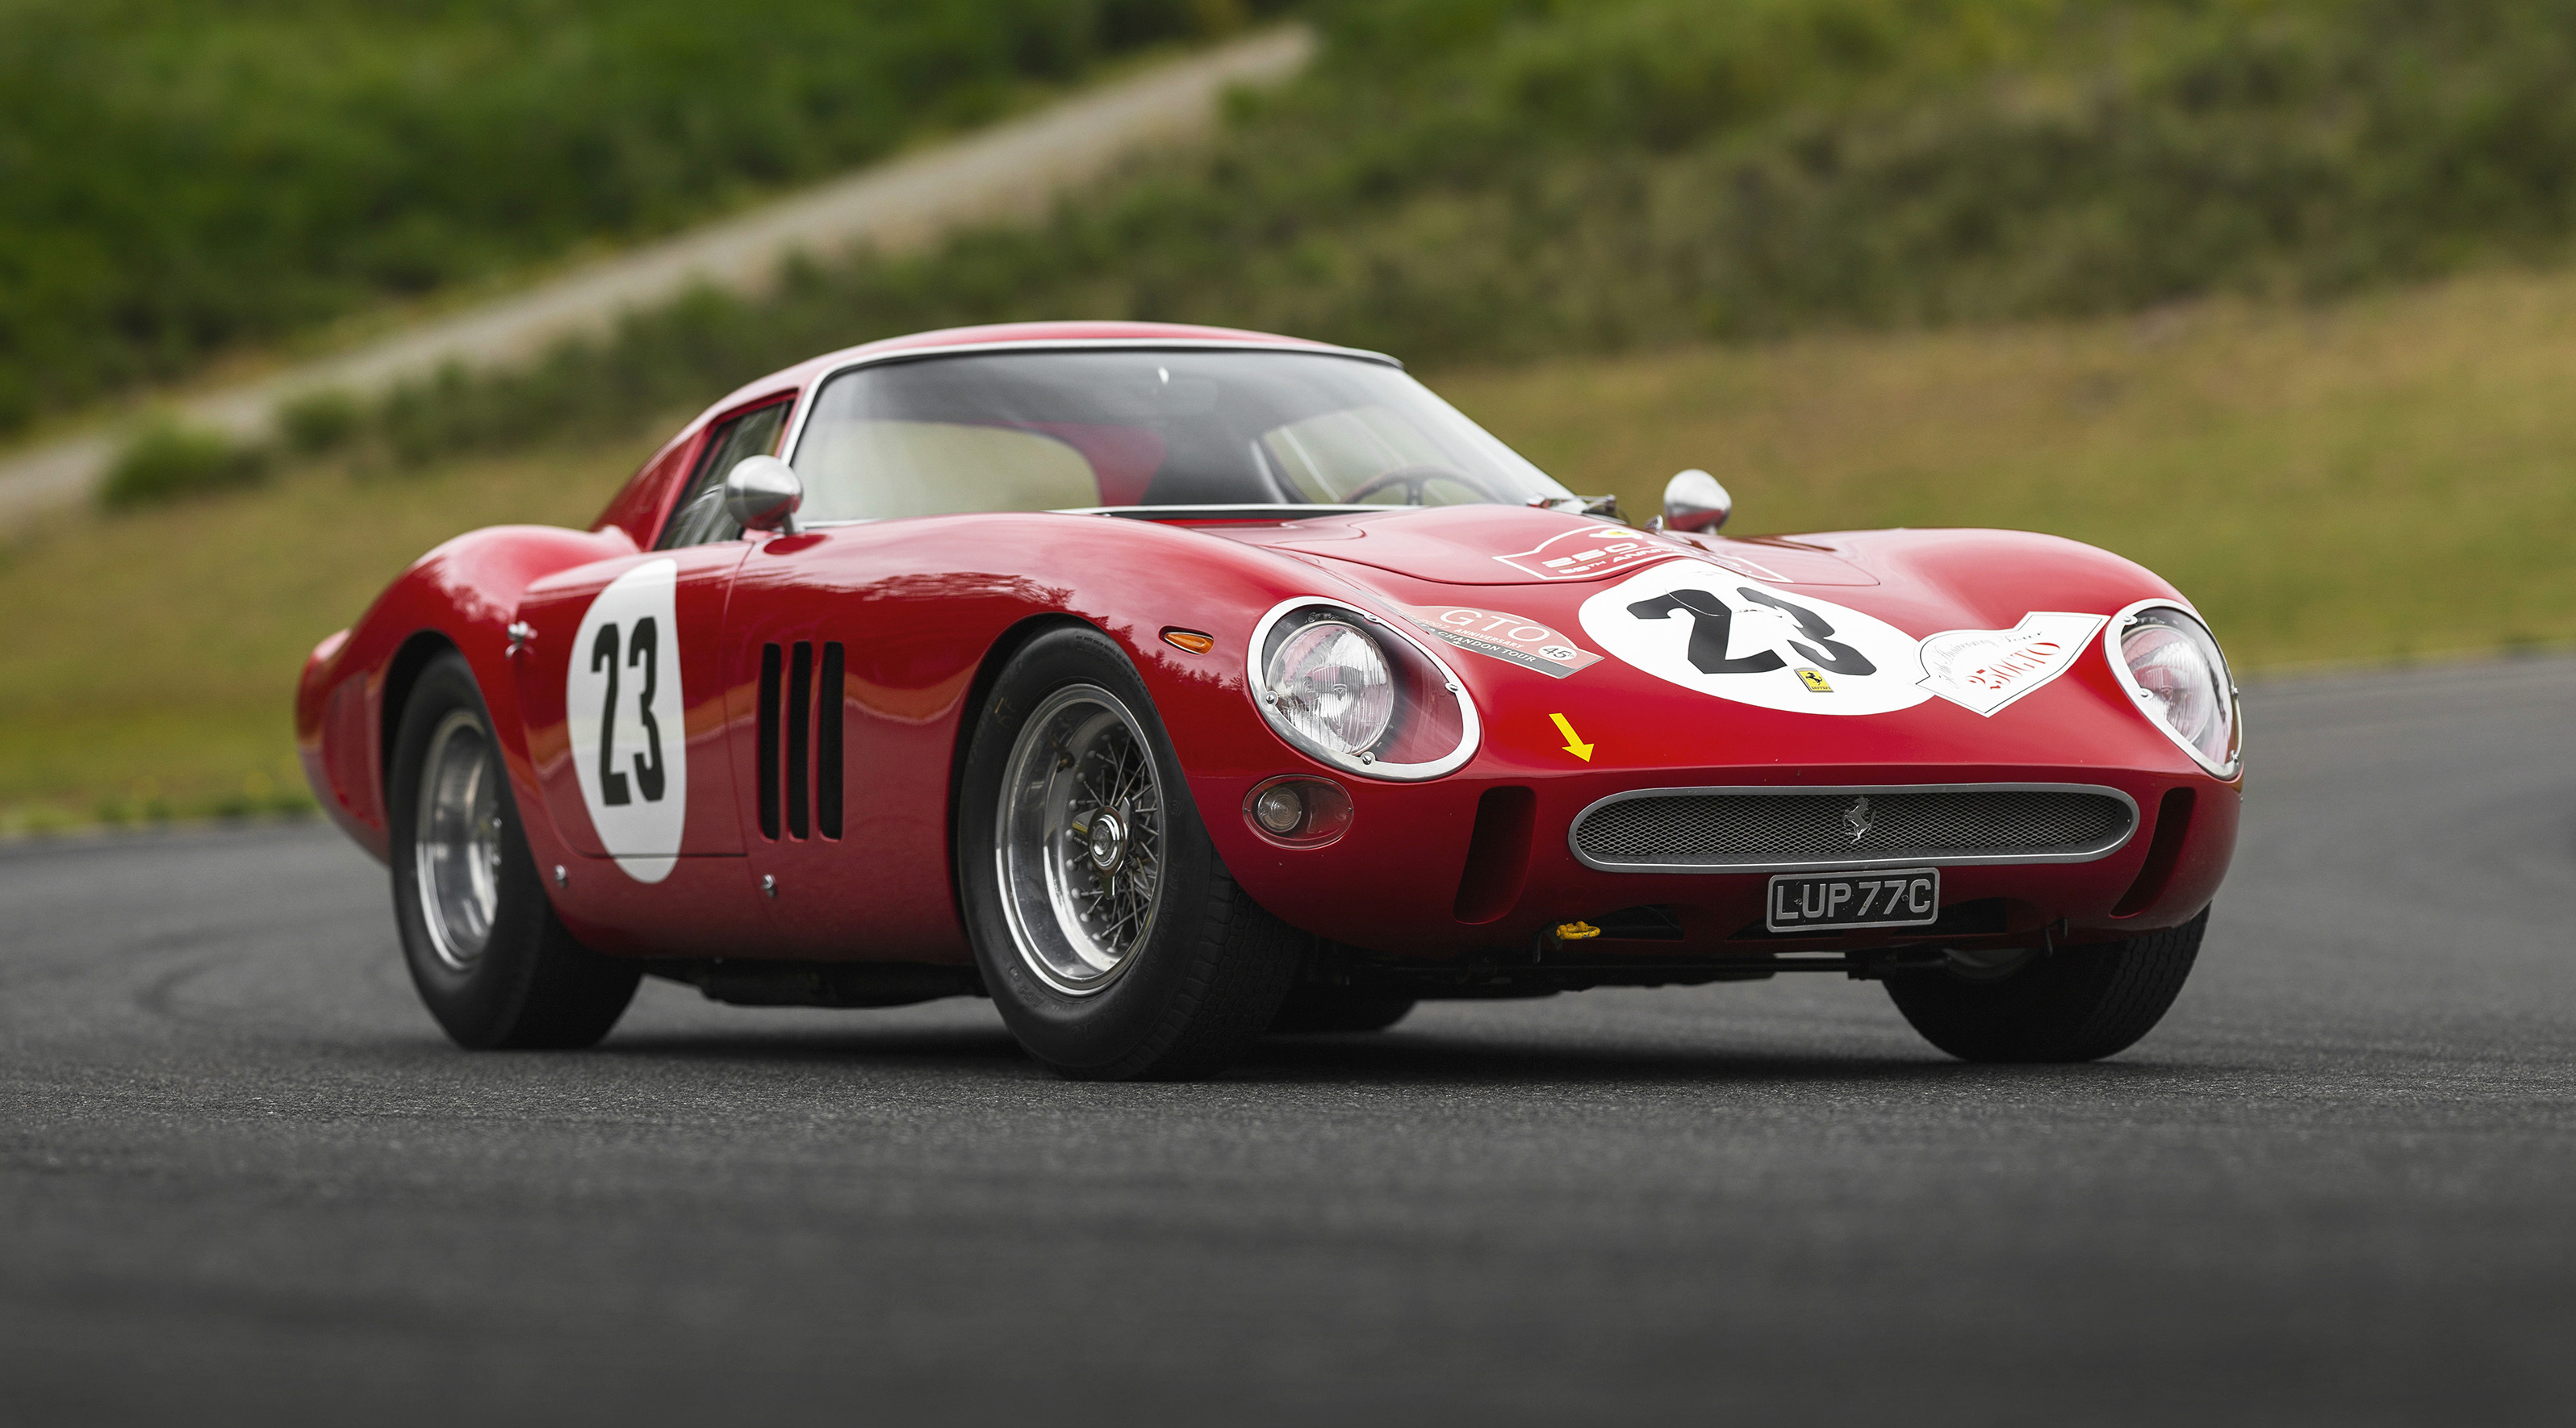 A 1962 Ferrari 250 GTO that was bid to US$48,405,000 at the RM Sotheby's sale in Monterey, California has become the most valuable car ever sold at public auction, beating the previous record auction price of US$38,115,000 for a 250 GTO.